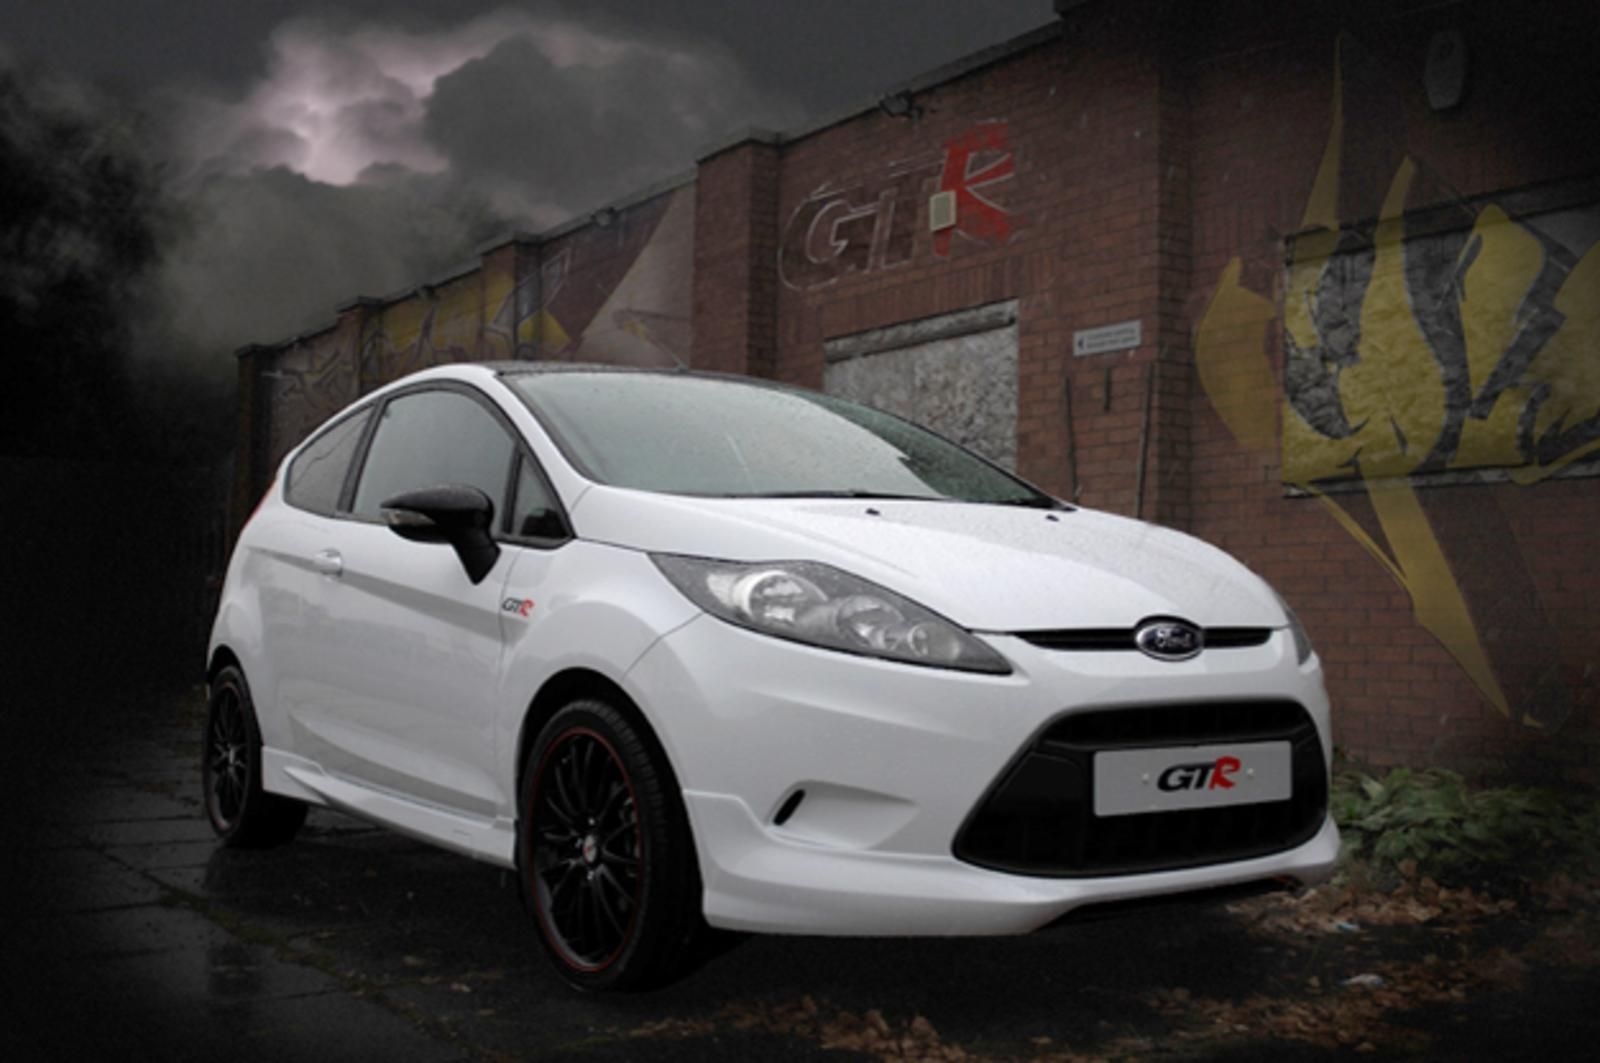 2011 Ford Fiesta GTR Review - Top Speed